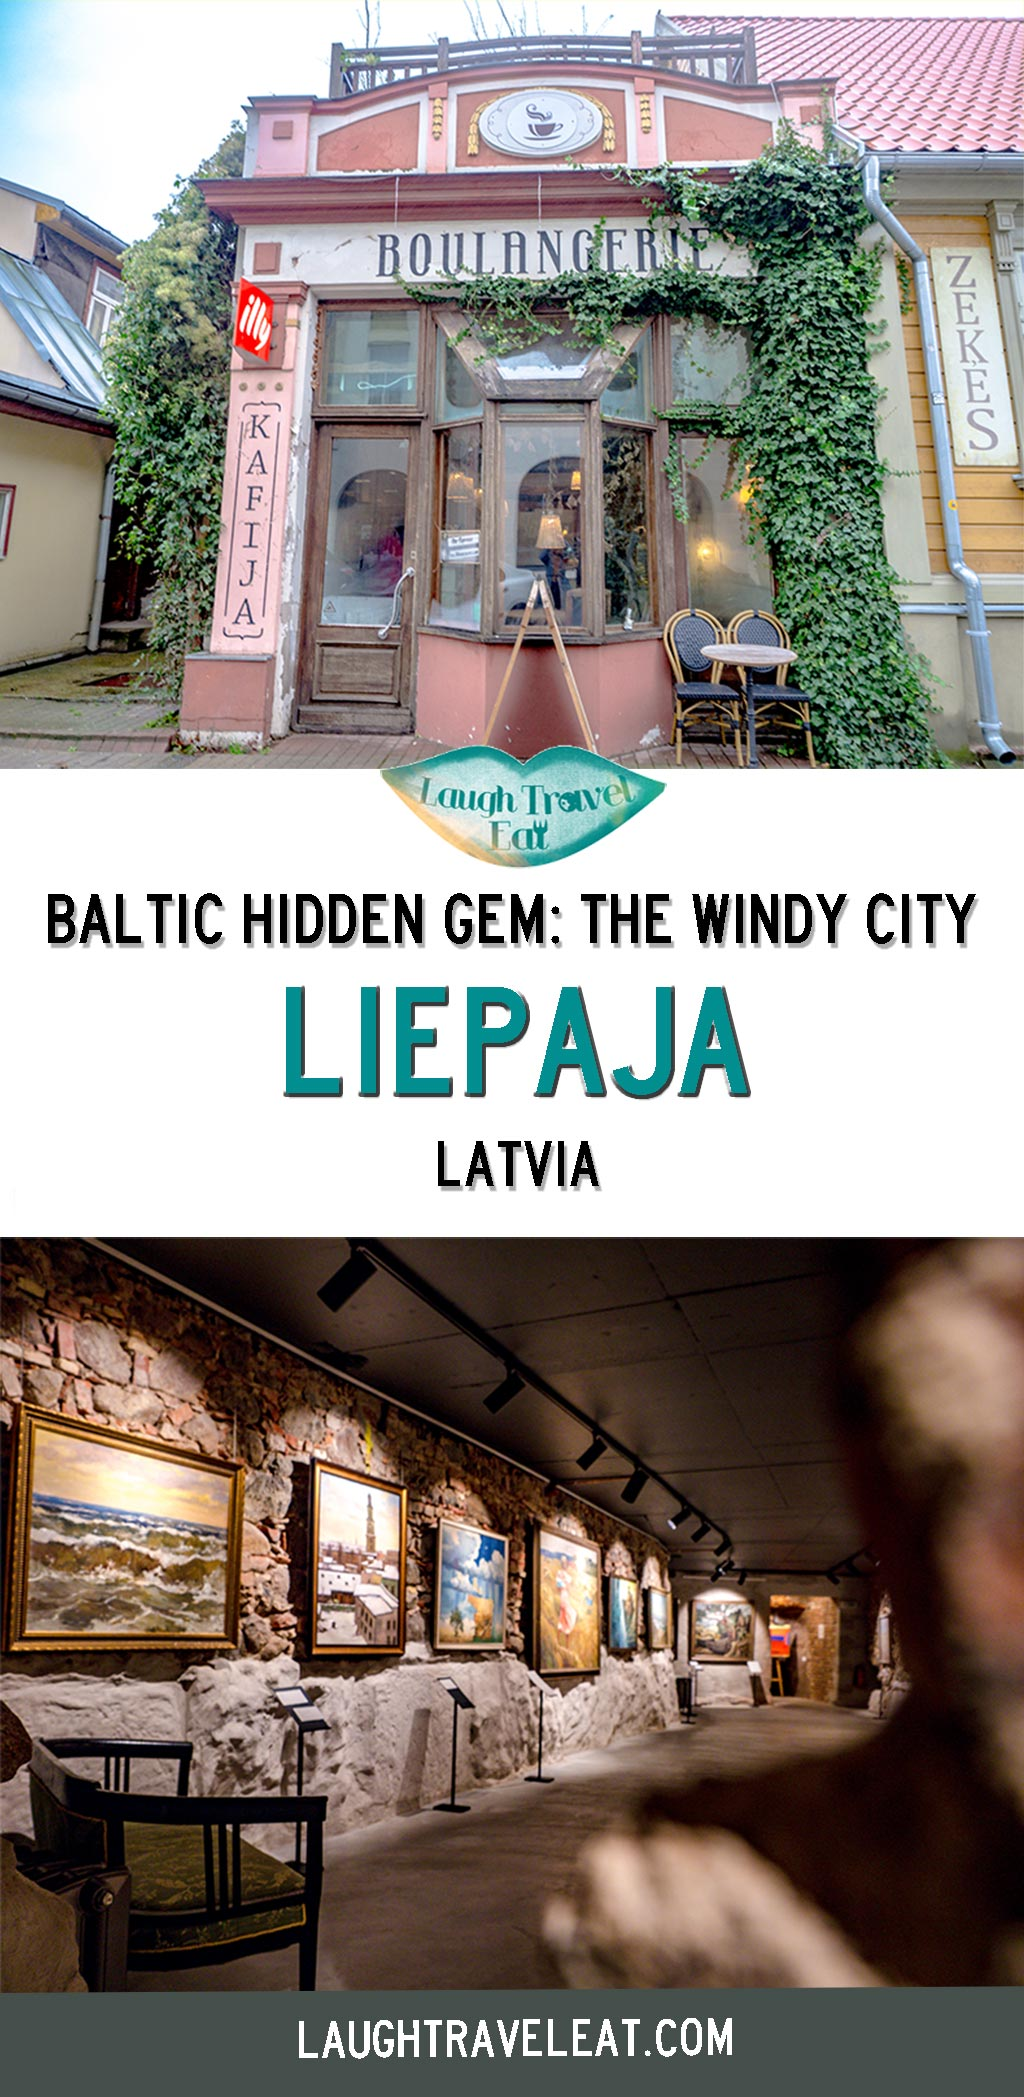 Liepāja is the third largest city in Latvia on the Baltic coast. It's known as the Windy City, 3 hours west of Riga (or one hour by plane). It's a popular seaside town known for its wind and beaches, as well as their theater. It's a great place to spend some quiet town, whether with music or in nature. Here are the top things to do in Liepāja: #Liepaja #Latvia #Baltic